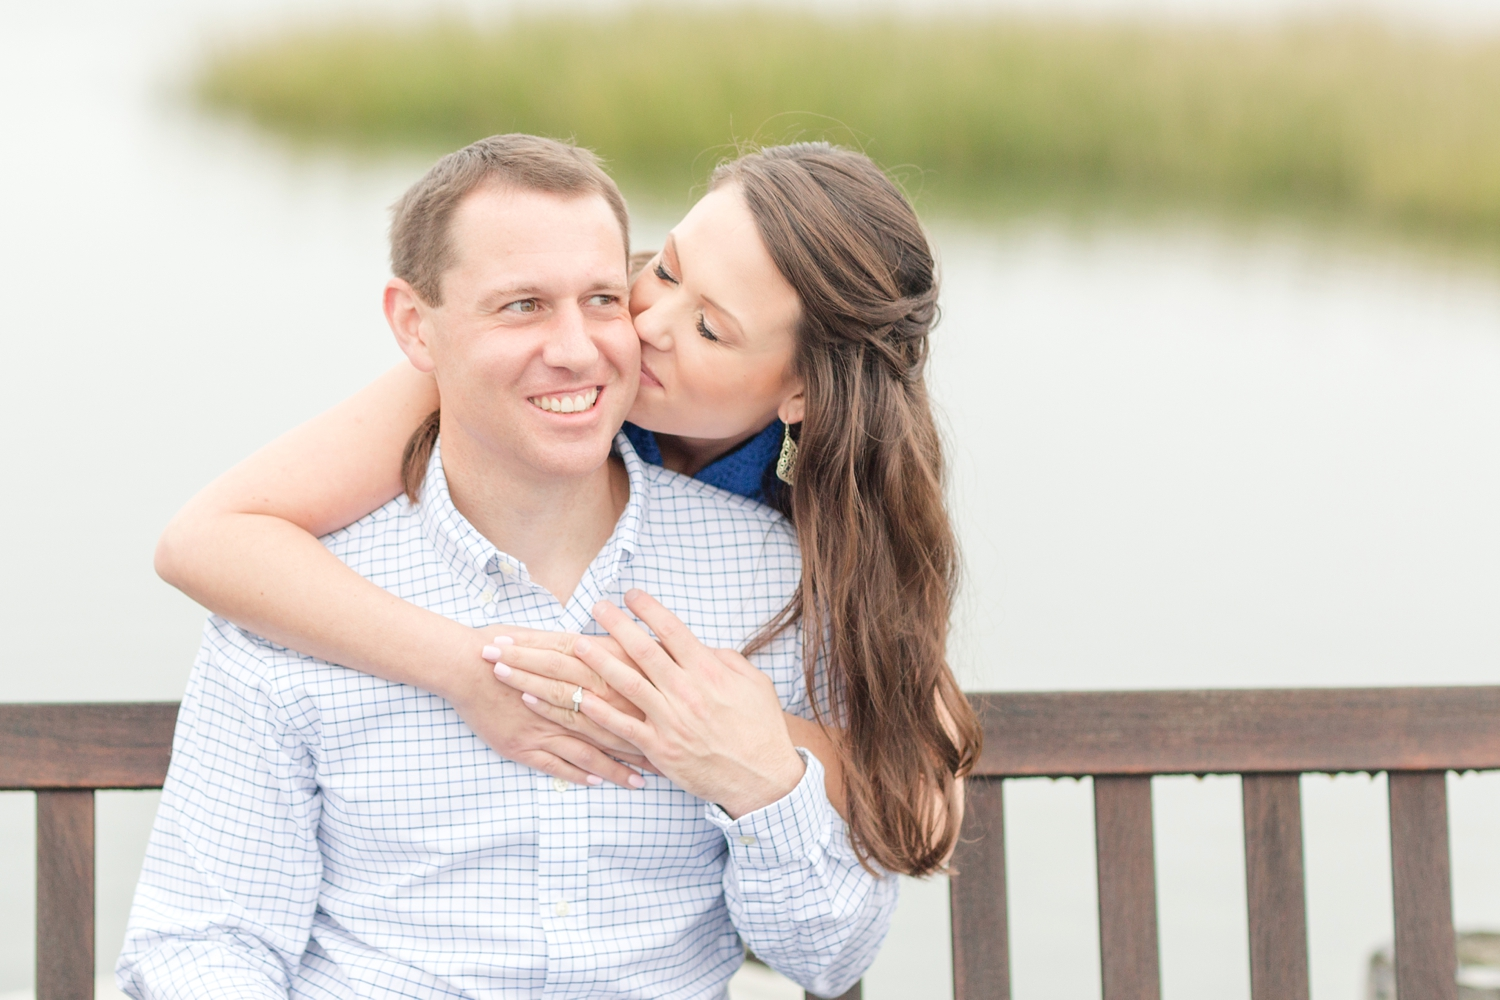 Susan Sturgeon & Stephen George Engagement-350_bethany-beach-engagement-shoot-delaware-maryland-photographer-anna-grace-photography-photo.jpg